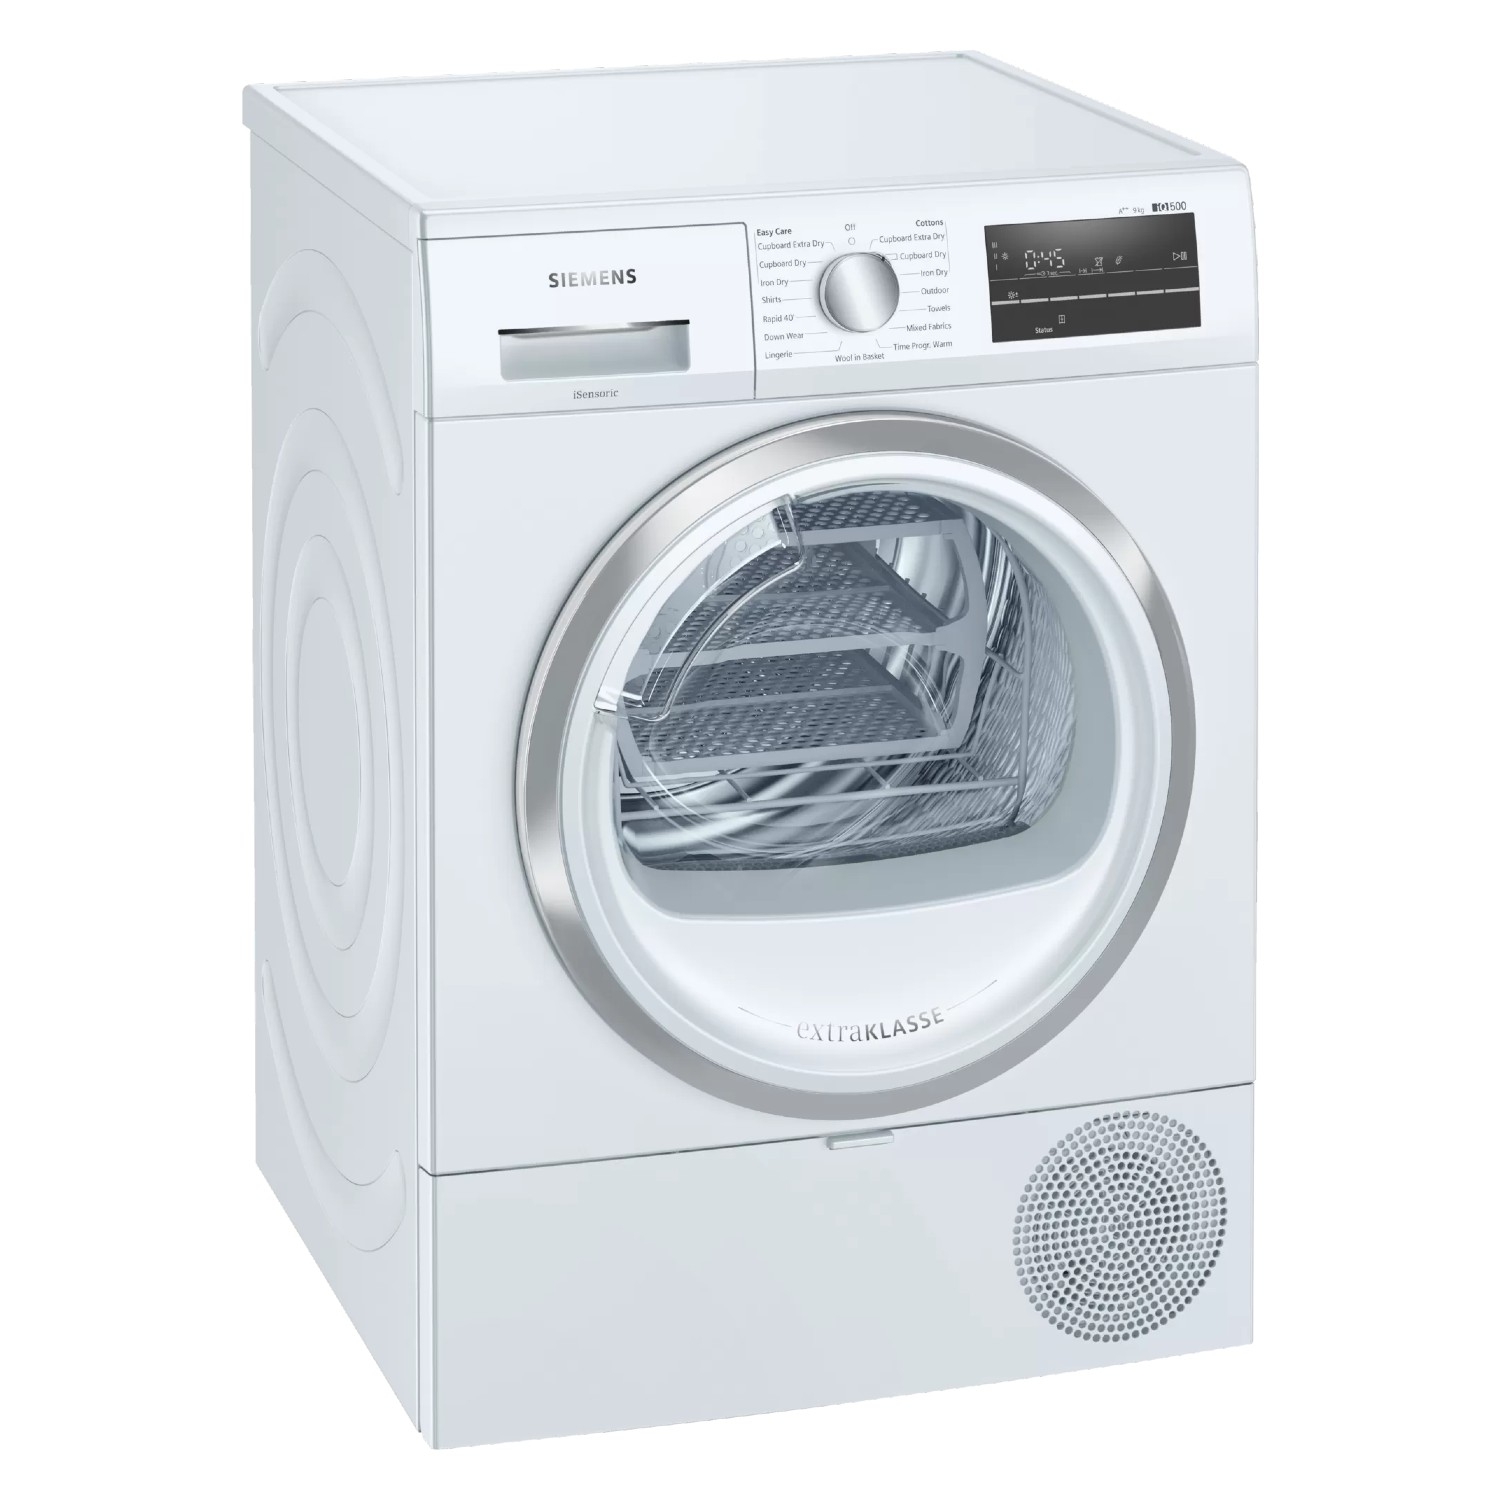 Siemens extraKlasse WT47RT90GB iQ500 9kg Heat Pump Tumble Dryer - White - 0